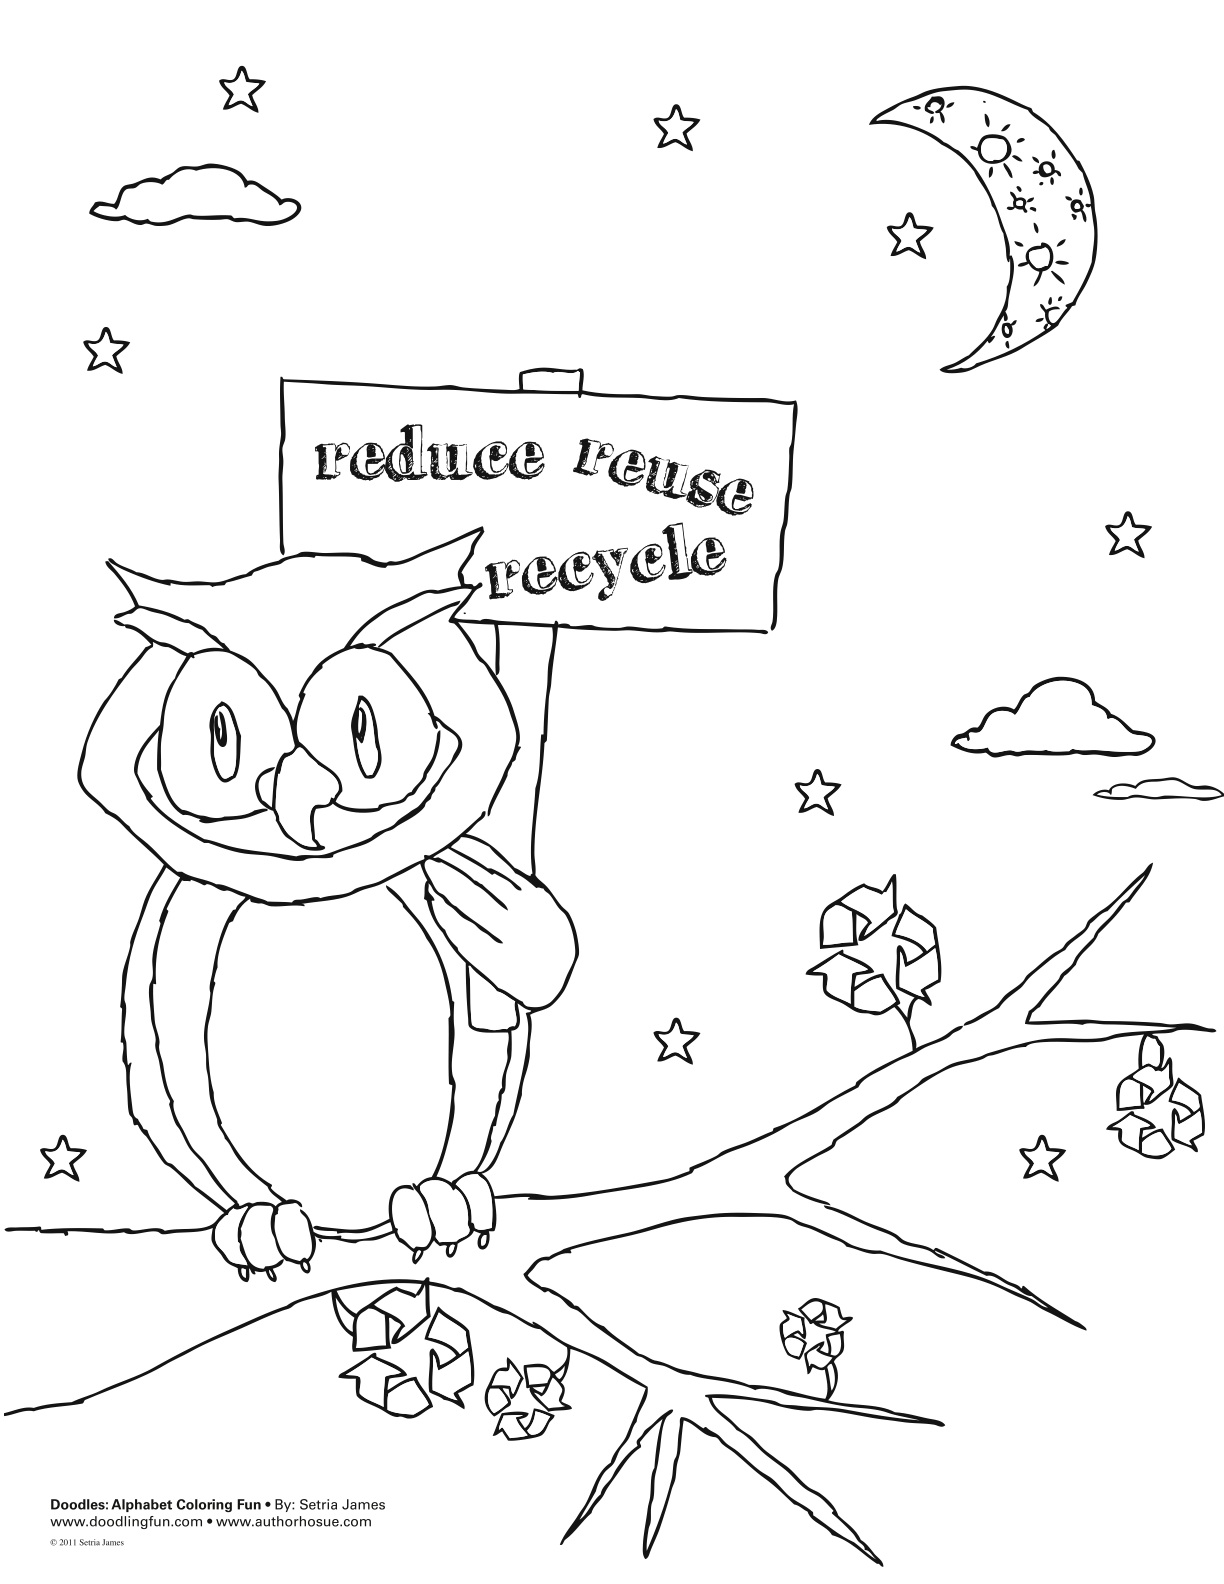 Recycle coloring sheet doodles ave for Recycling coloring pages